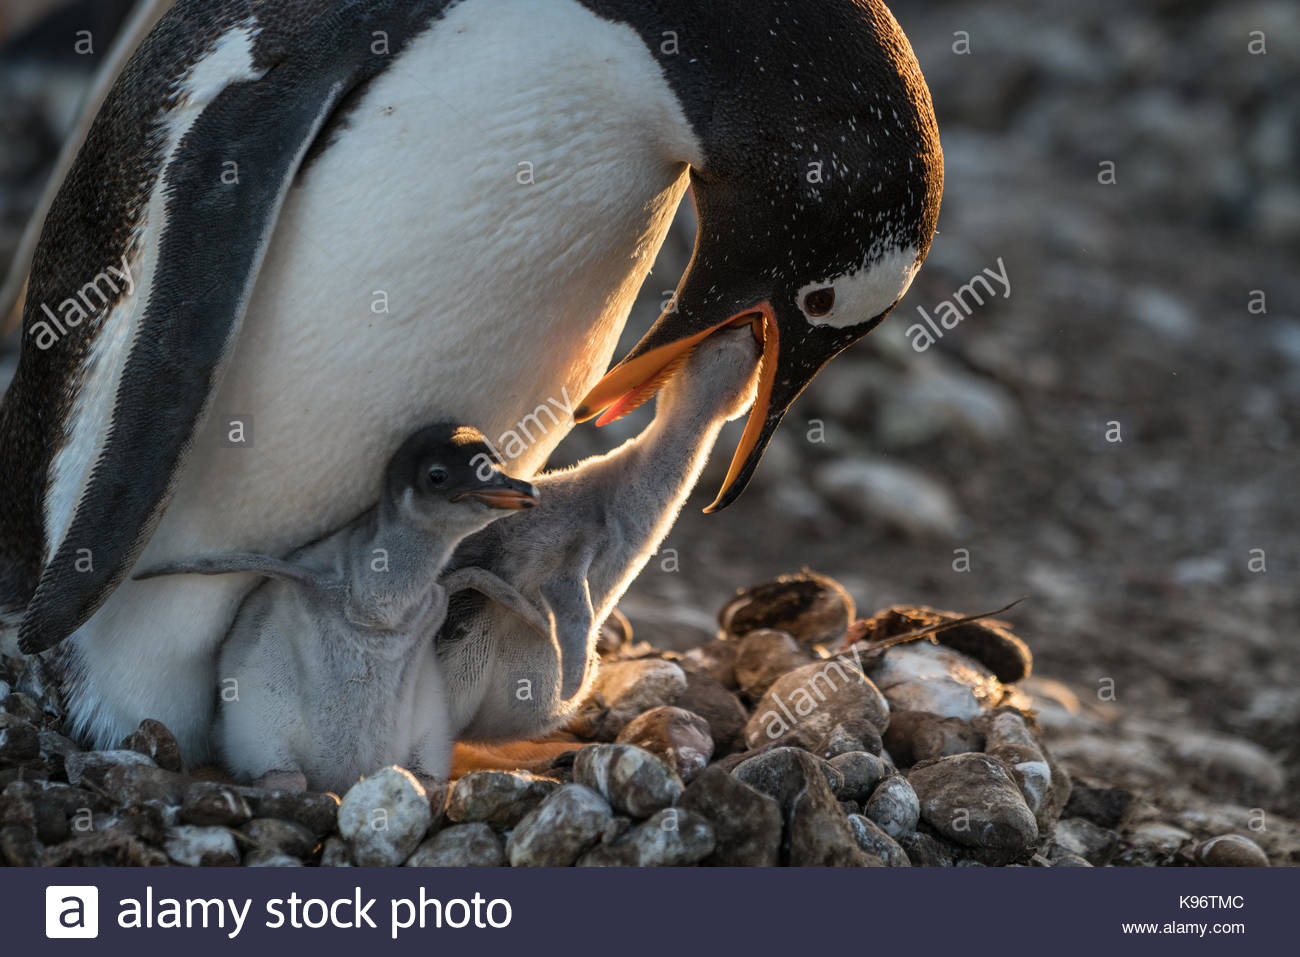 A nestling feeds through the mouth of an adult penguin. - Stock Image